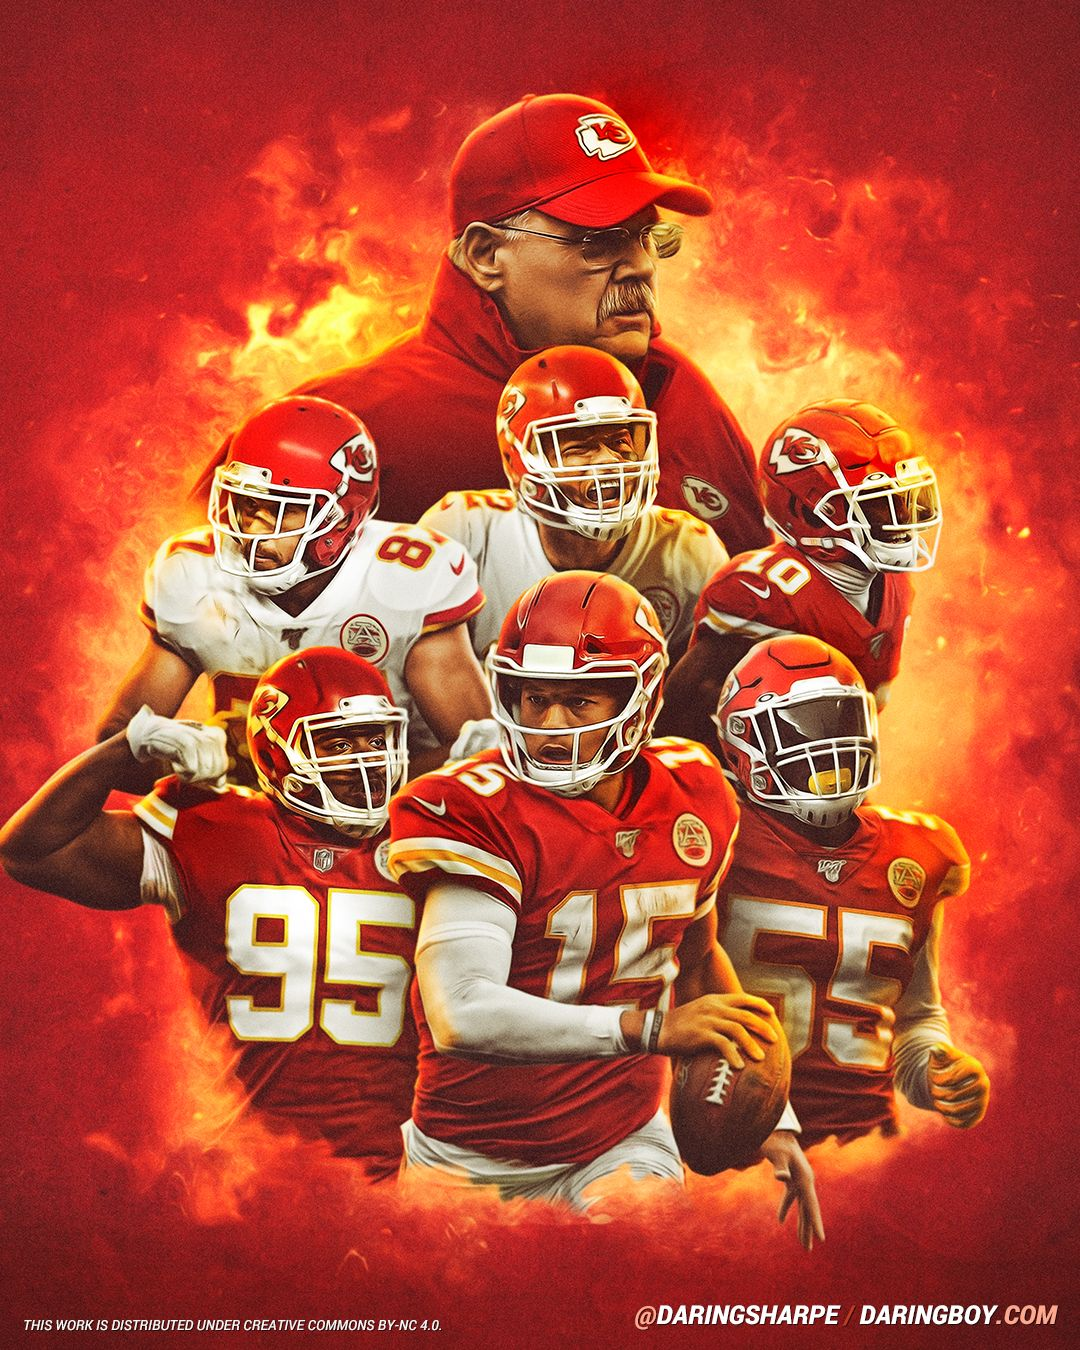 Andy Reid Tyreek Hill Frank Clark Tyrann Mathieu Patrick Mahomes Chris Jones In 2020 Kansas City Chiefs Funny Kansas City Chiefs Logo Kansas City Chiefs Football